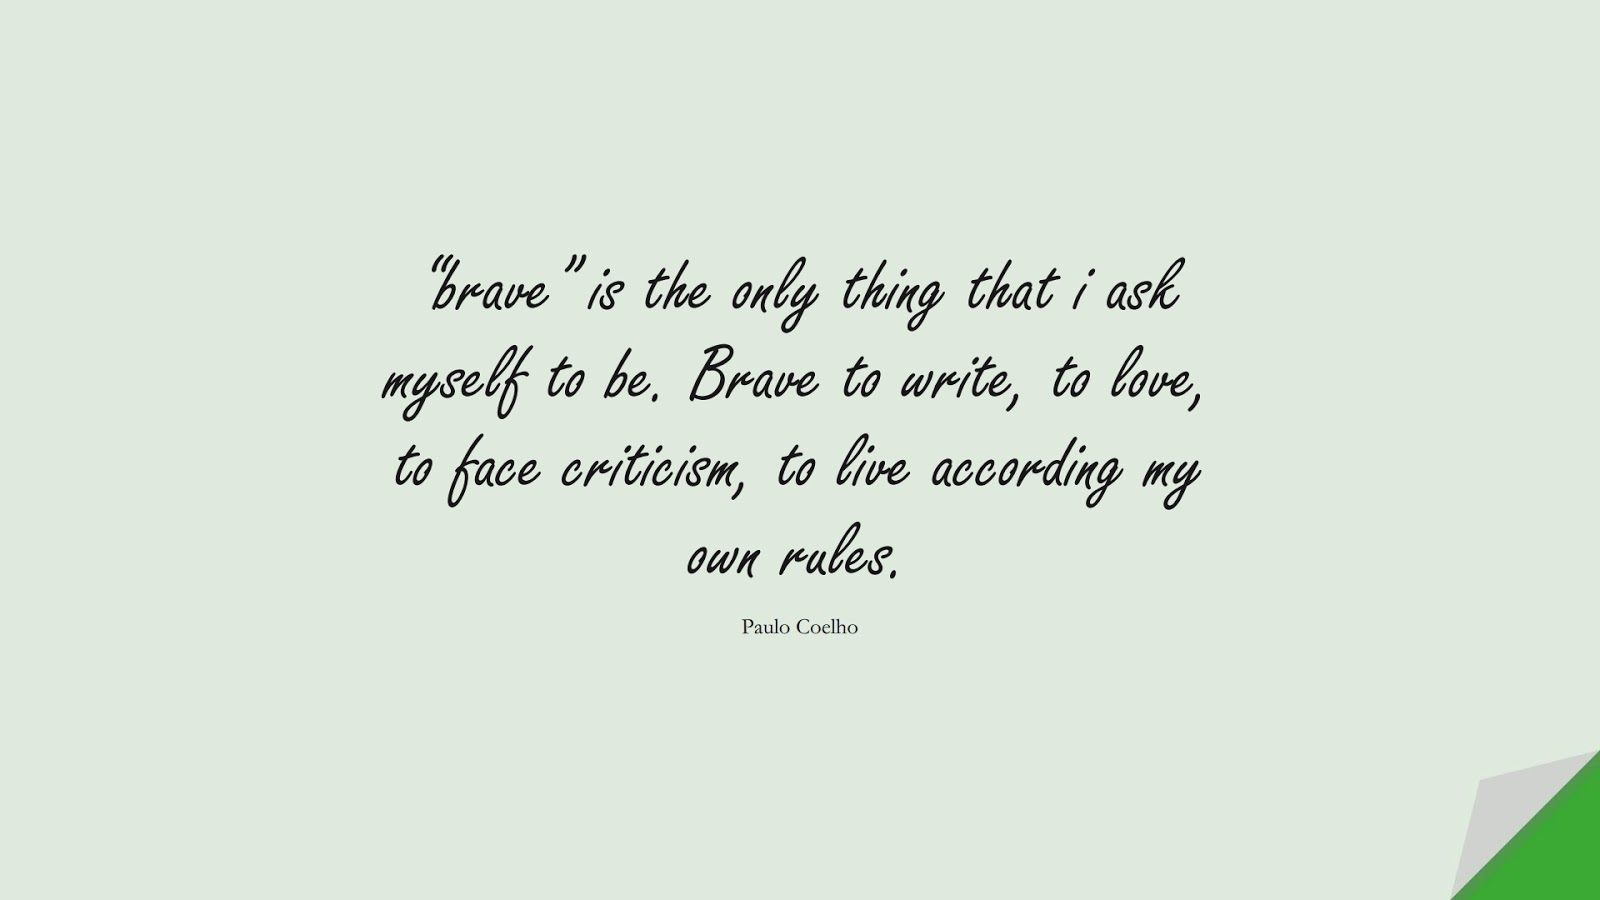 """""""brave"""" is the only thing that i ask myself to be. Brave to write, to love, to face criticism, to live according my own rules. (Paulo Coelho);  #CourageQuotes"""